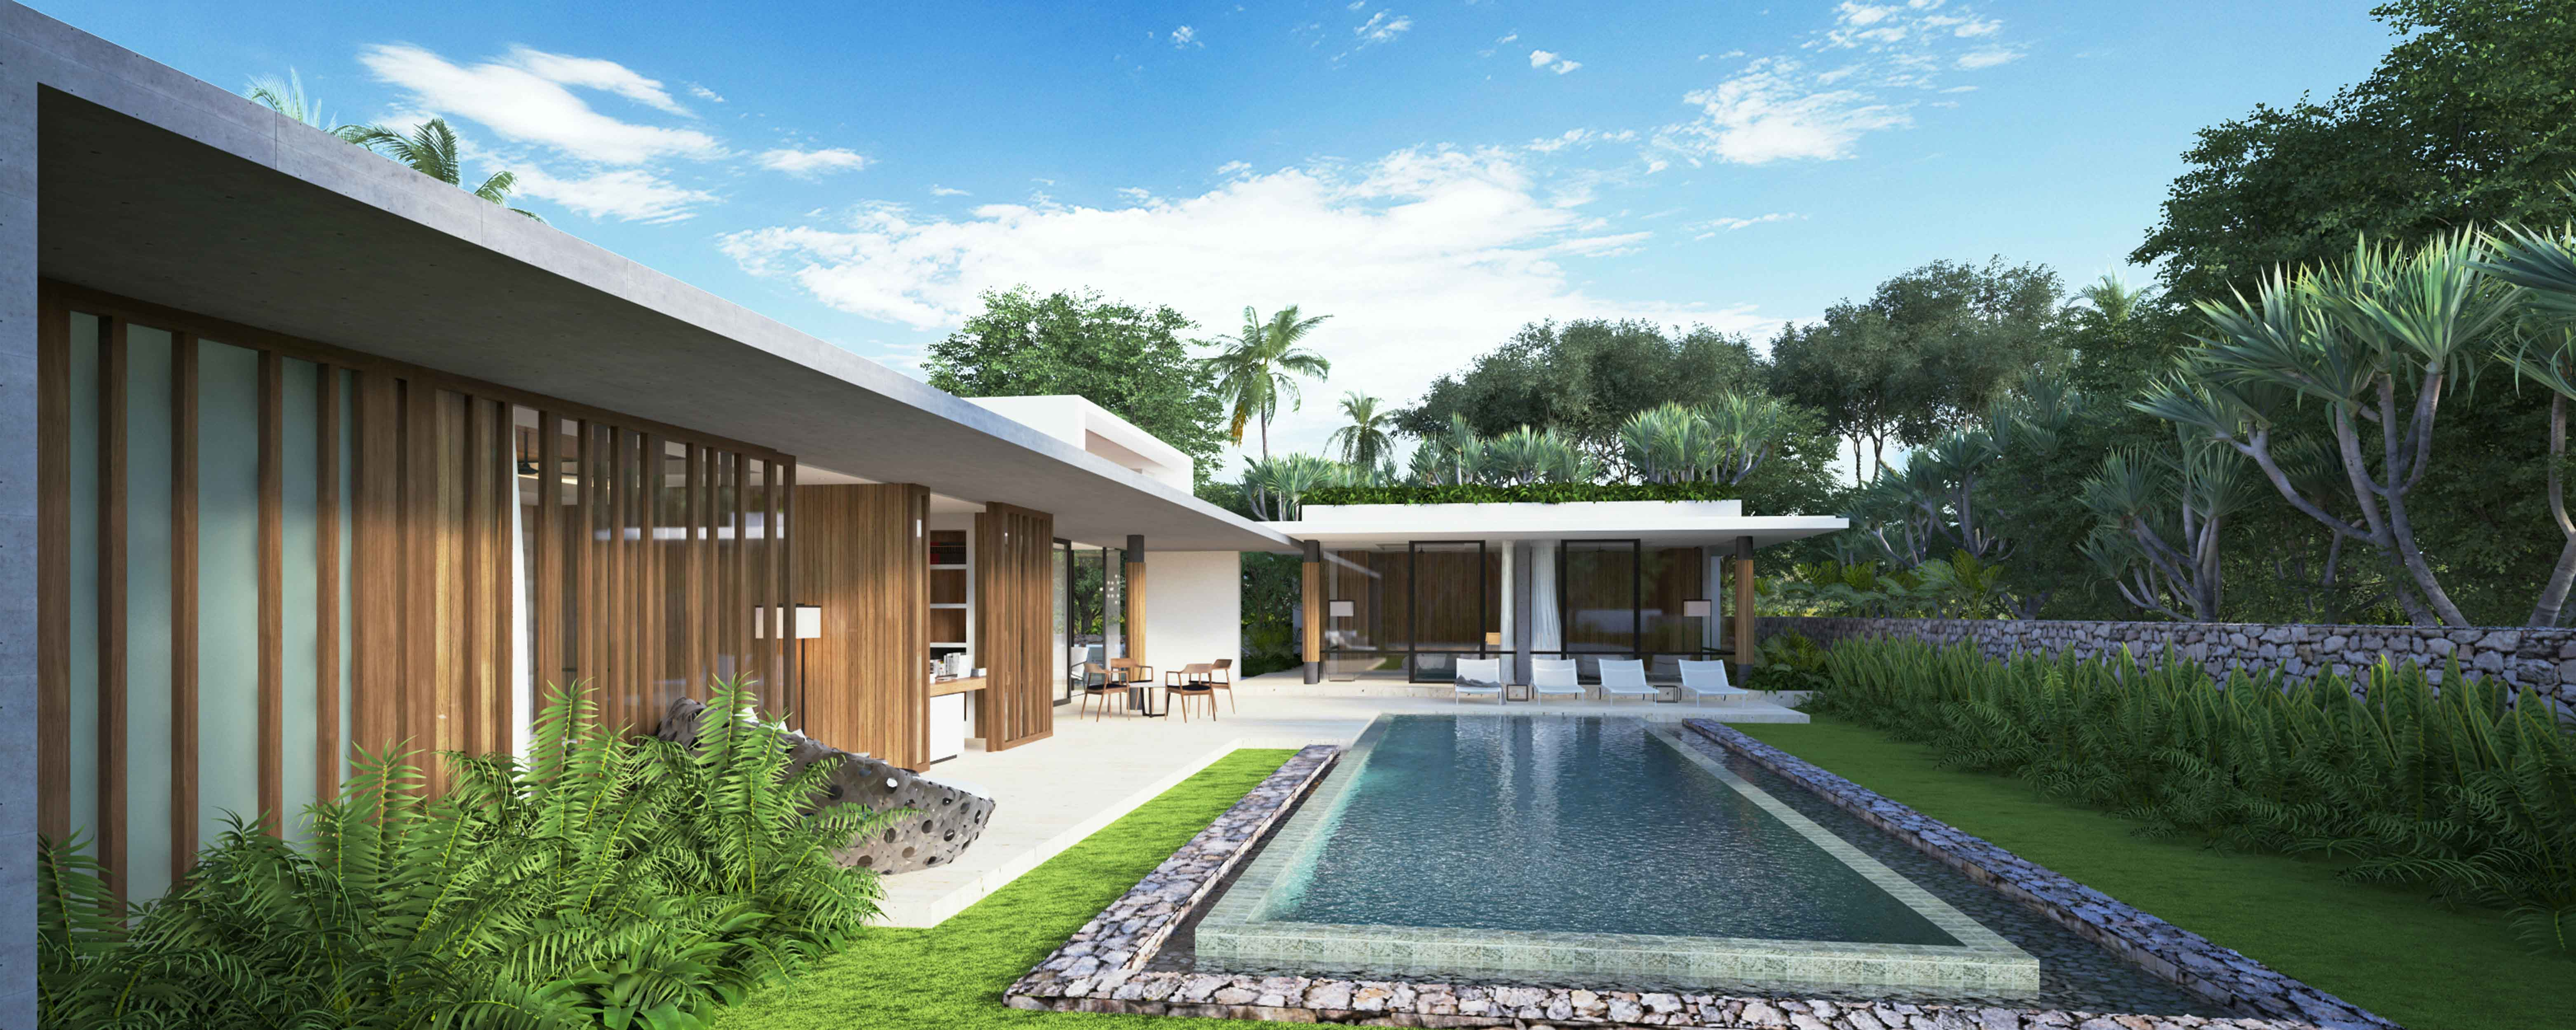 Projects Photo/Sunplay Lifestyle Bangsaray Thailand/sunplay-lifestyle-villa-f1